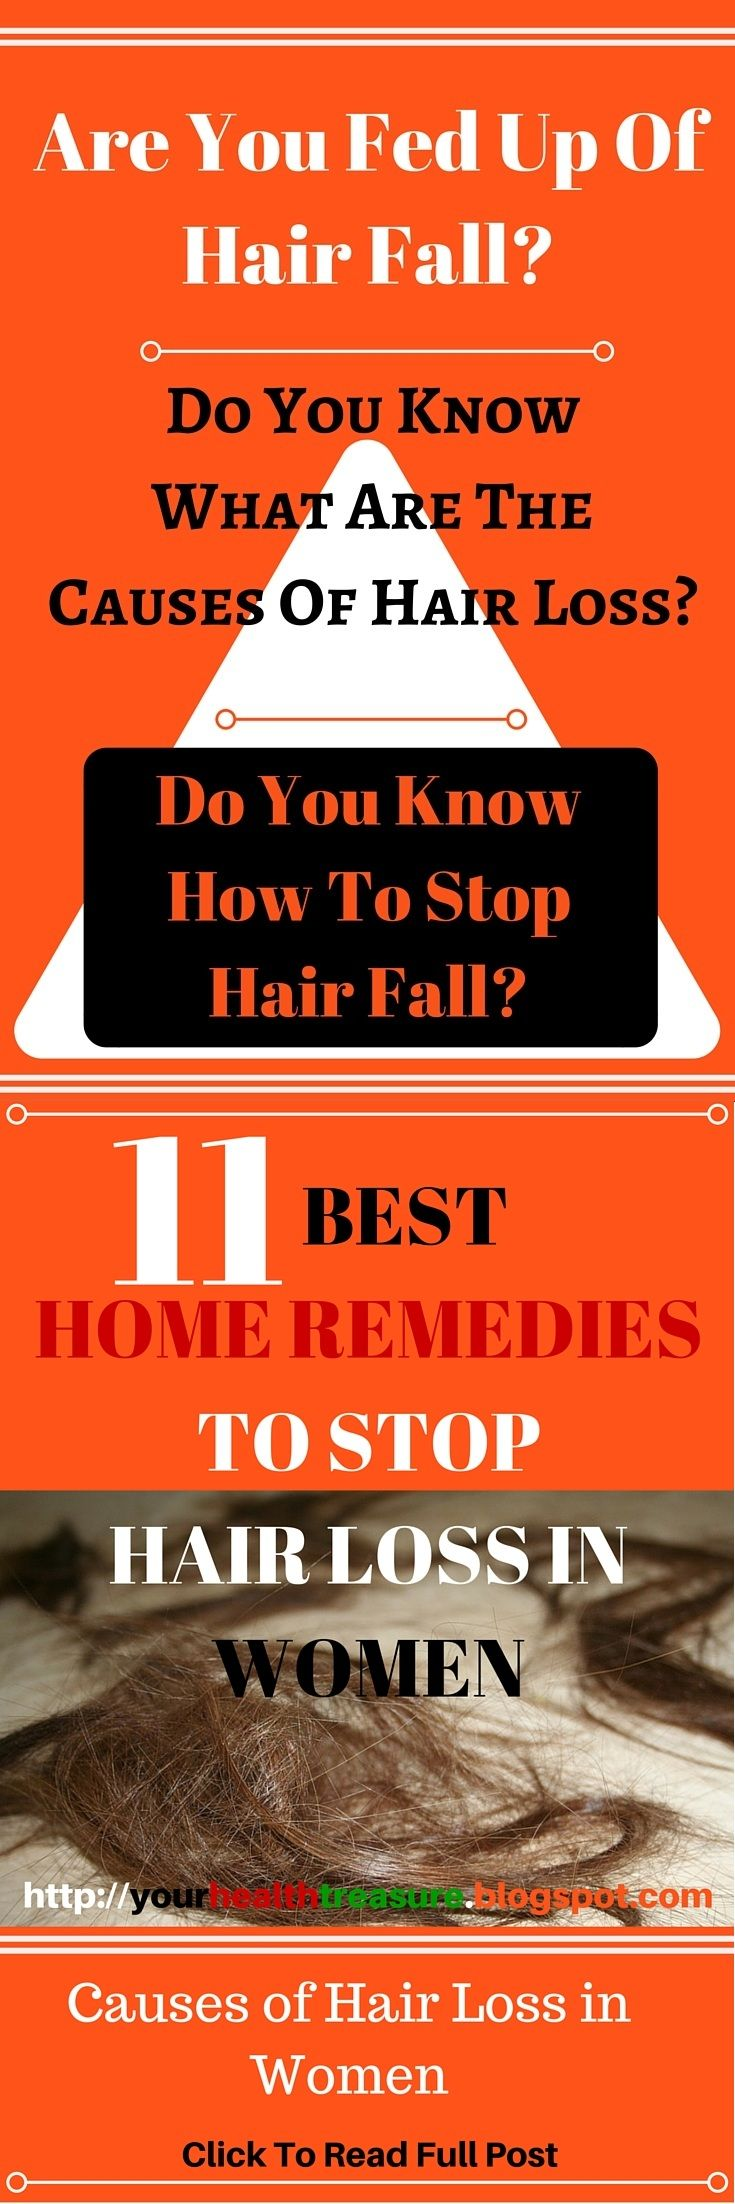 11 Home Remedies for Hair Loss in Women - Causes of Hair Loss in Women - Hair Falling Out, How To Stop Hair Fall, Home Remedies For Hair Fall, Prevent Hair Loss, Hair Loss Causes, How To Stop Hair Fall, Hair Loss, Hair Loss Treatment